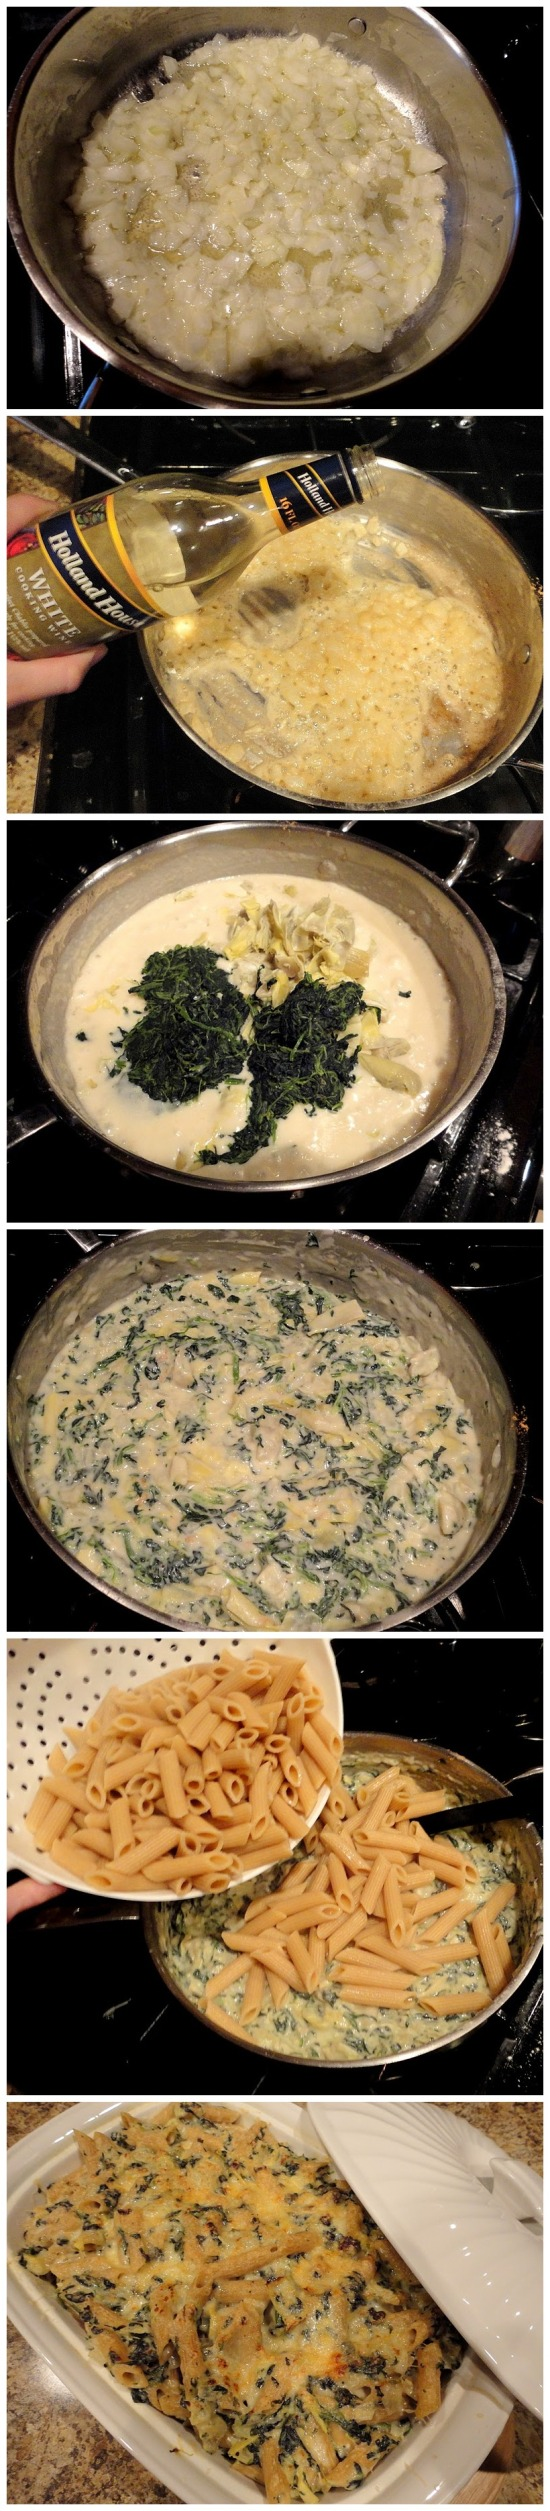 Spinach-Artichoke-Mac-N-Cheese-e1417339958501